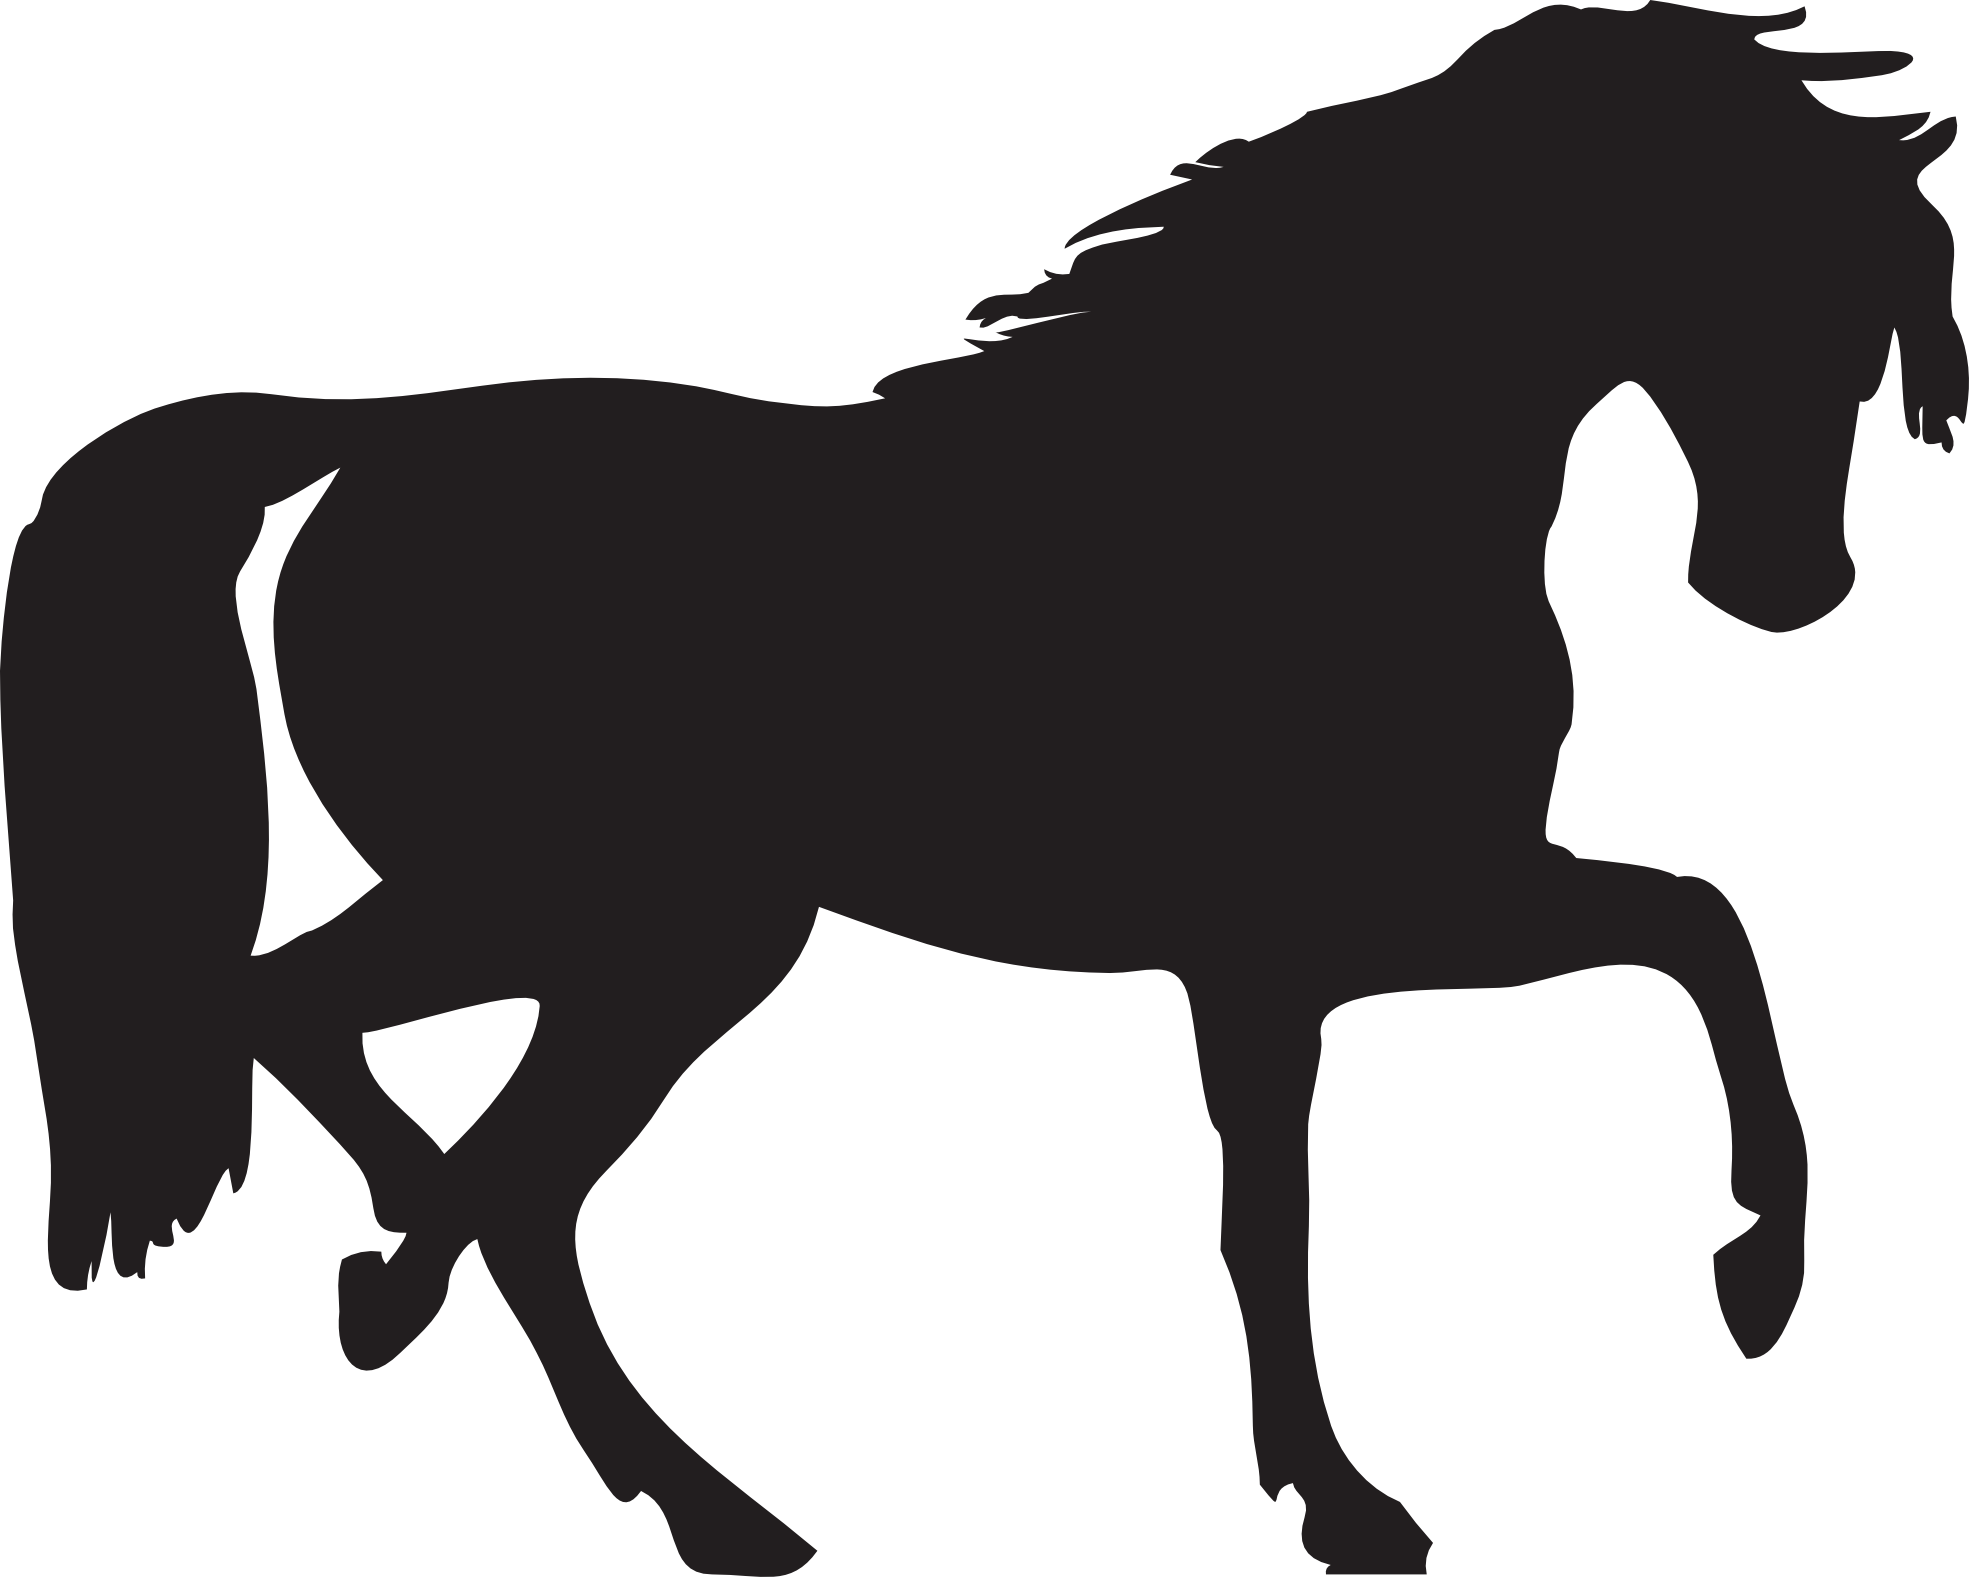 Clydesdale horse silhouette at. Horses clipart banner